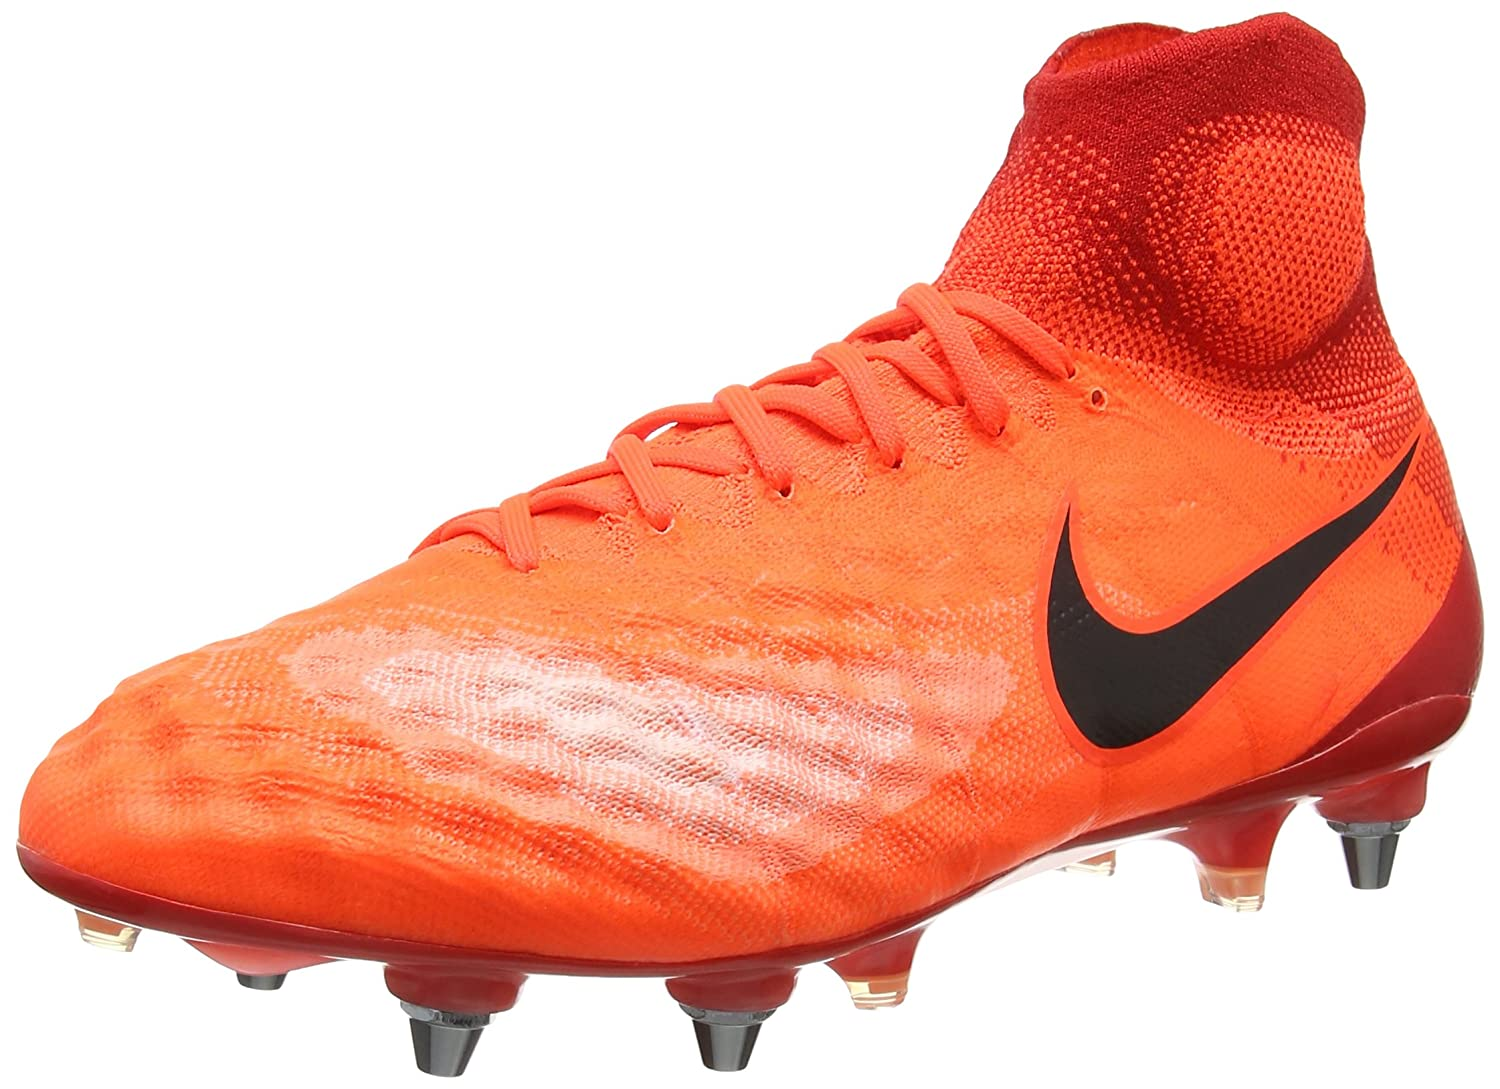 NIKE メンズ B004GCIDDO 8.5 D(M) US|Total Crimson Black 806 Total Crimson Black 806 8.5 D(M) US